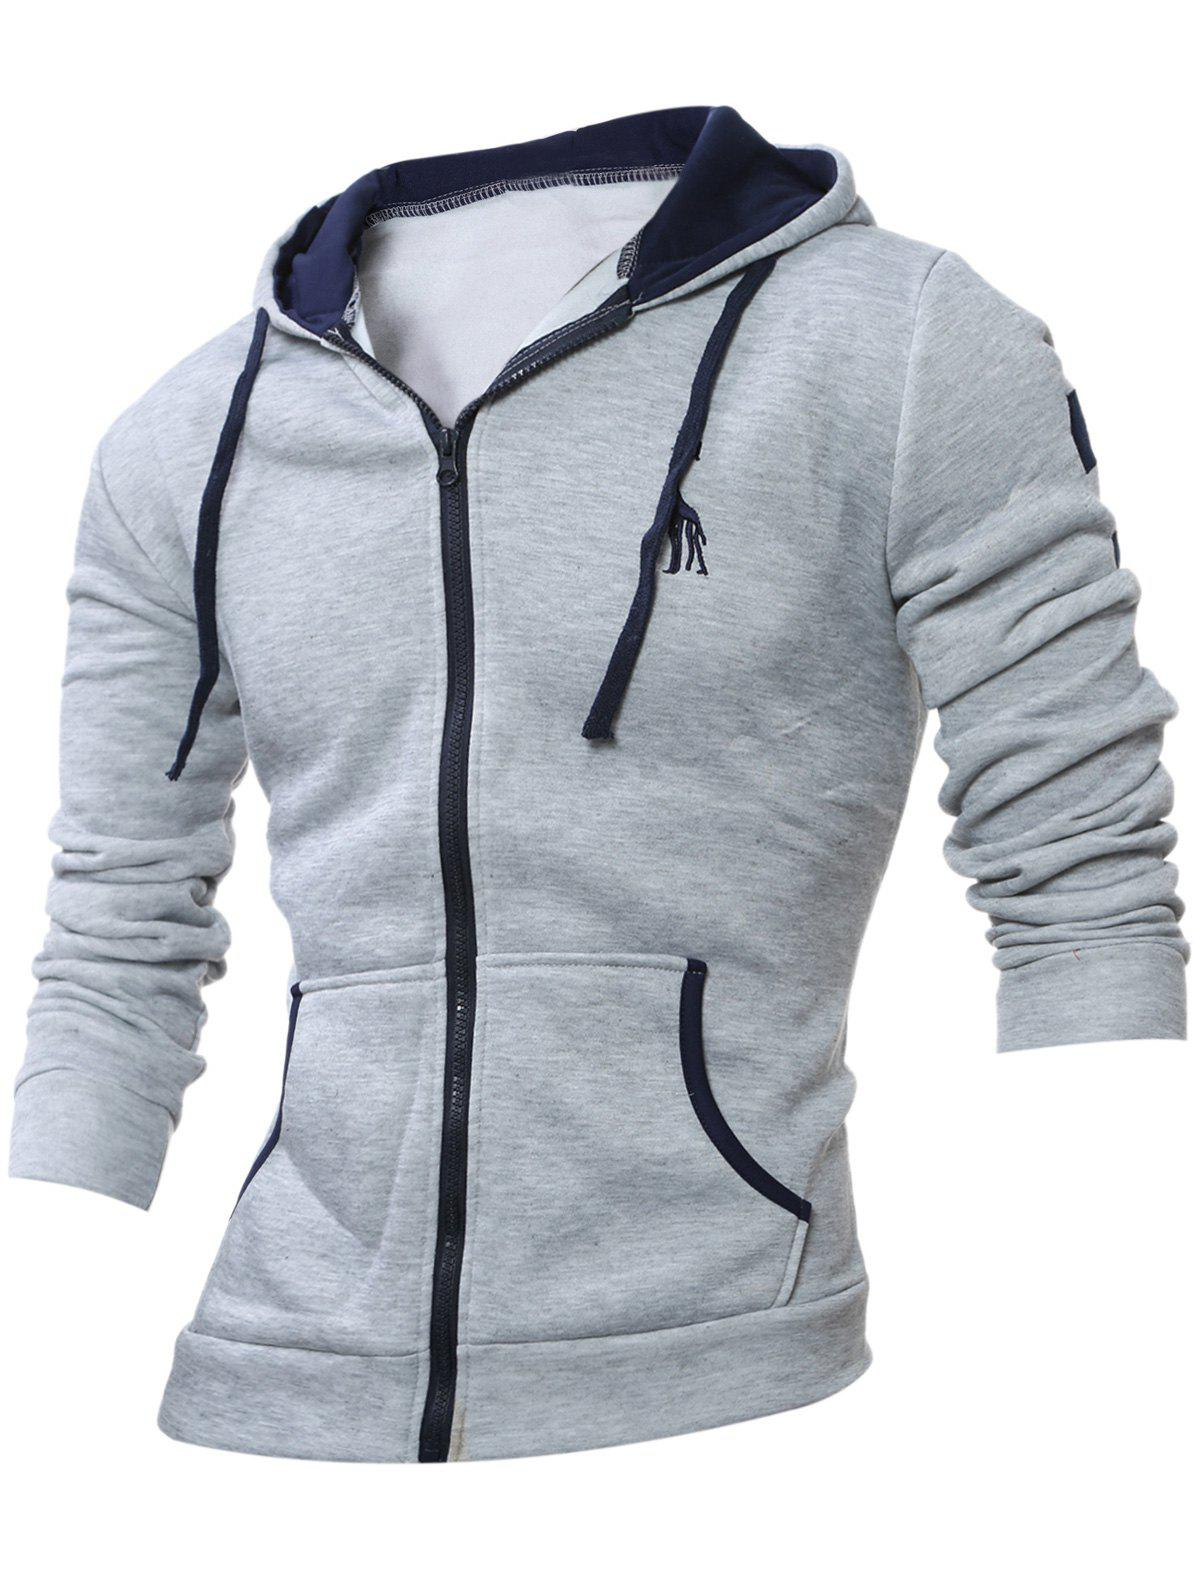 Embroidery Zippered Long Sleeve Hoodie - LIGHT GRAY 2XL